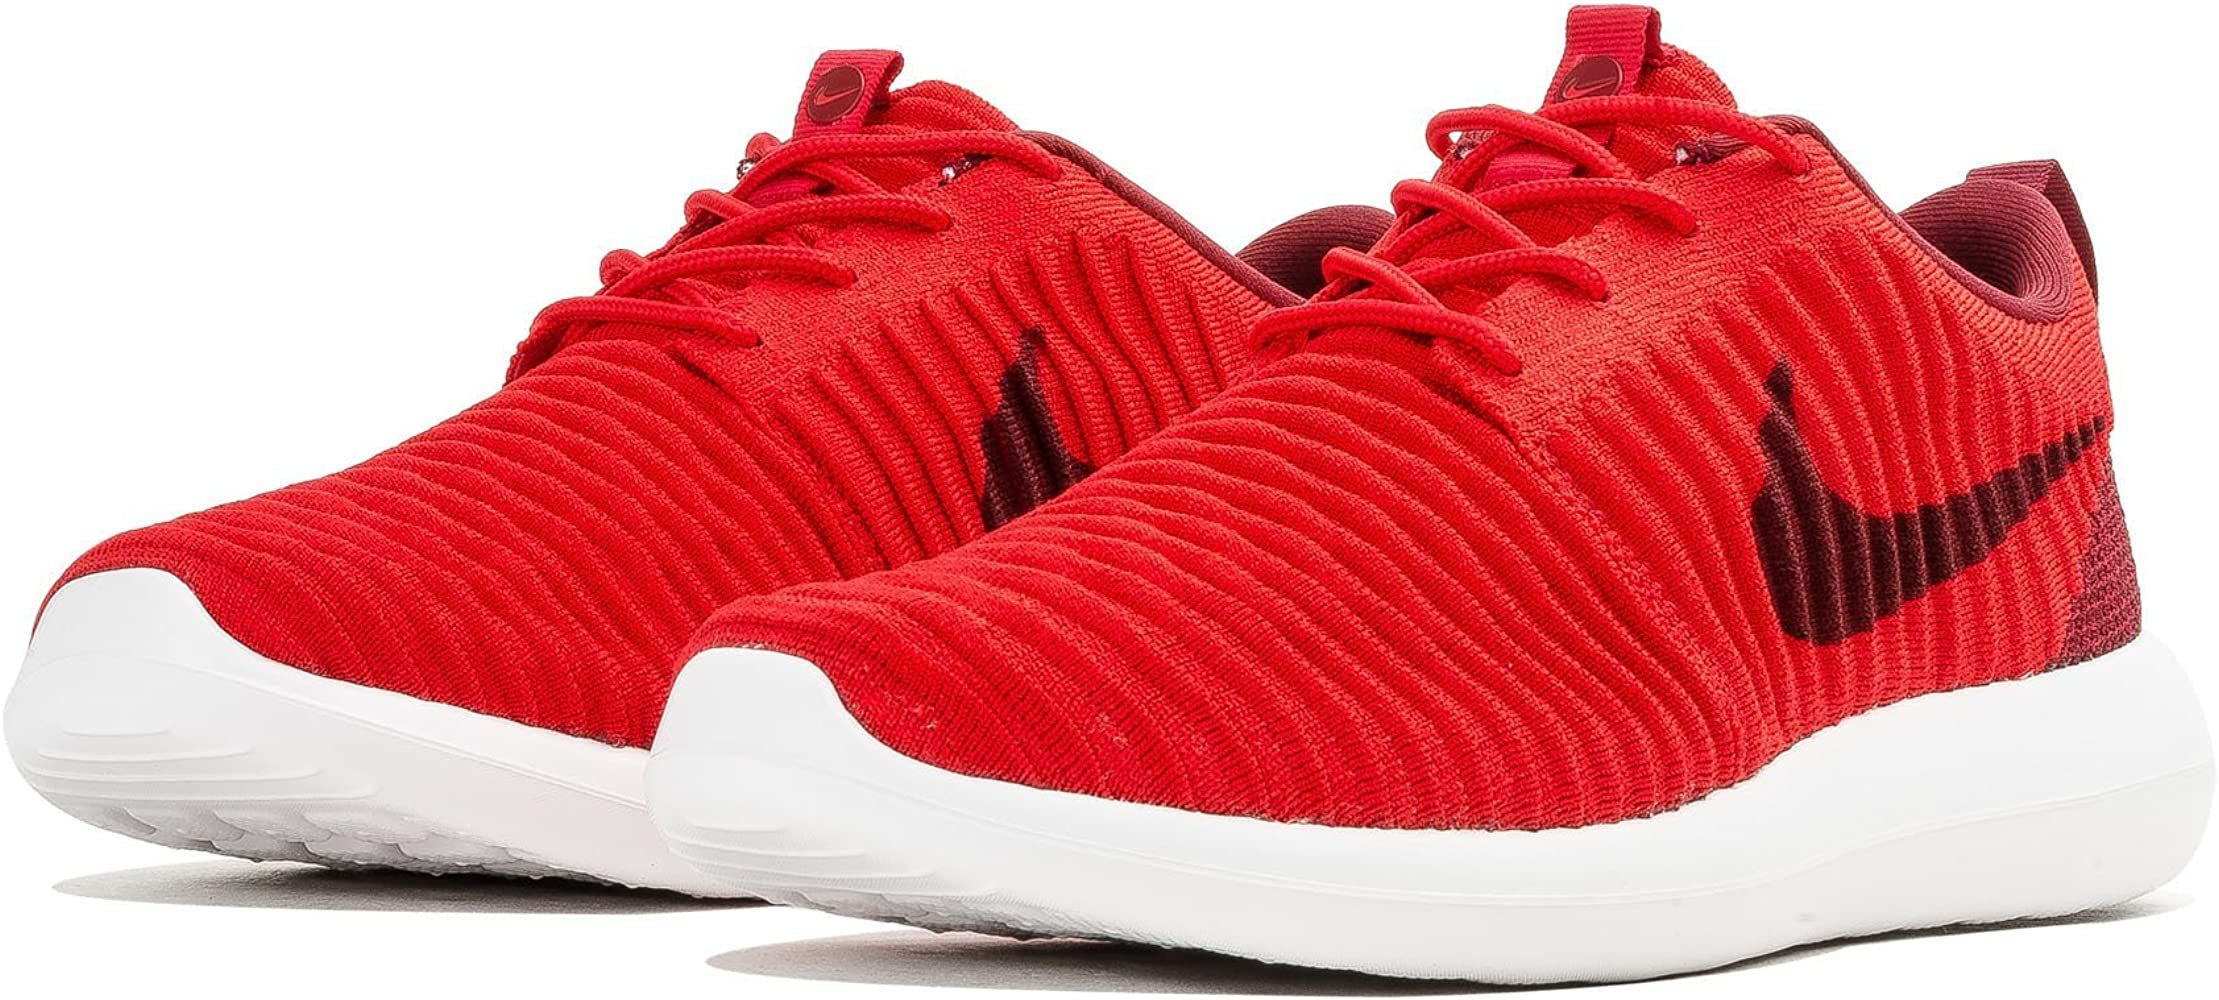 Noveno Vuelo Sustancial  Amazon.com: Nike Men's Roshe Two Flyknit Running Shoes, University Red/Black /White, Size 11.5 (US): Clothing